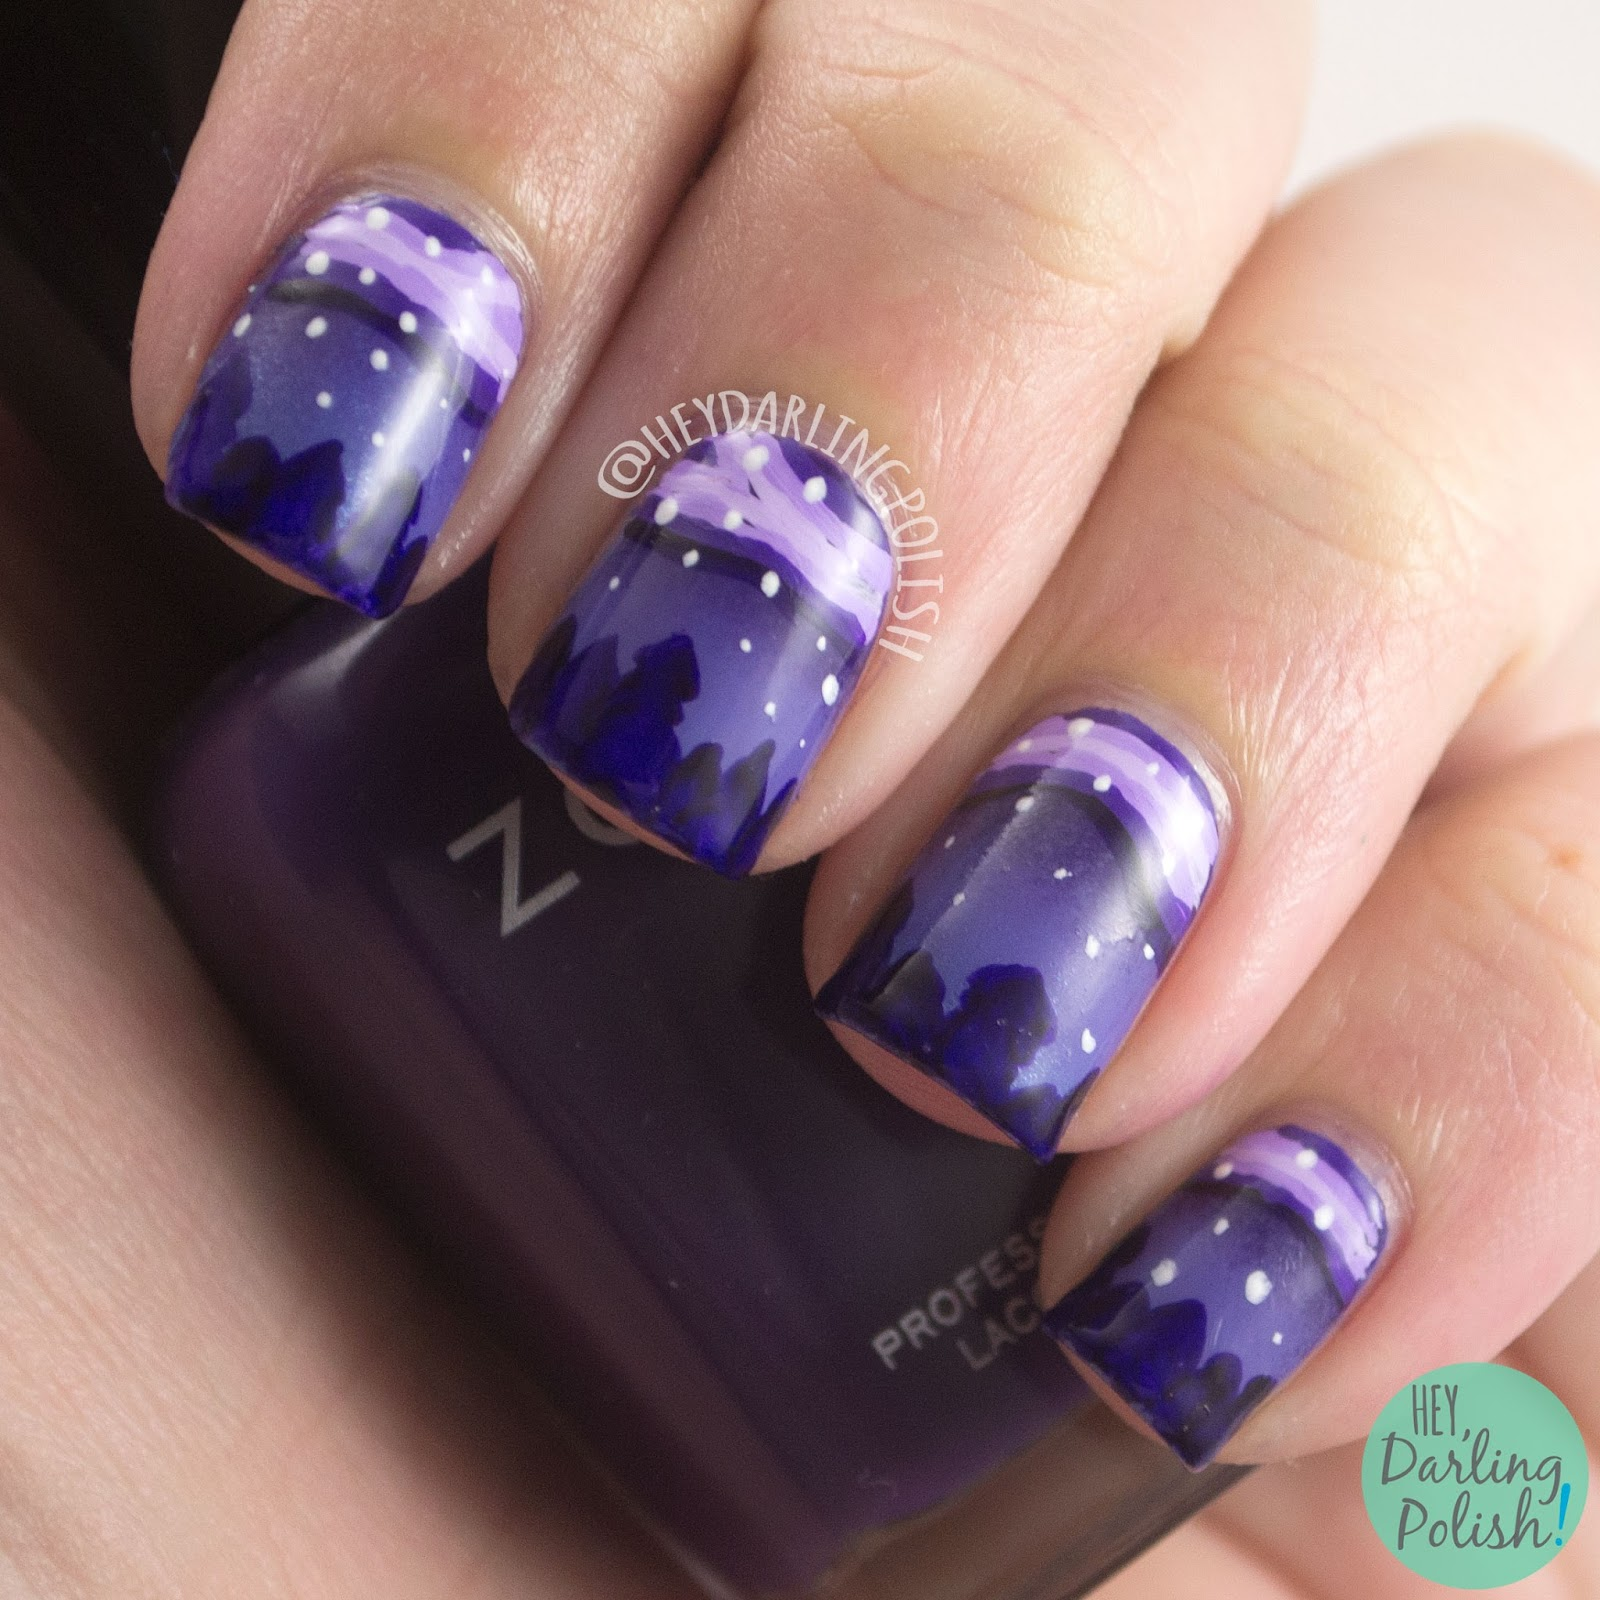 nails, nail art, nail polish, purple, outdoors, trees, night sky, night sky nail art, hey darling polish, the nail art guild